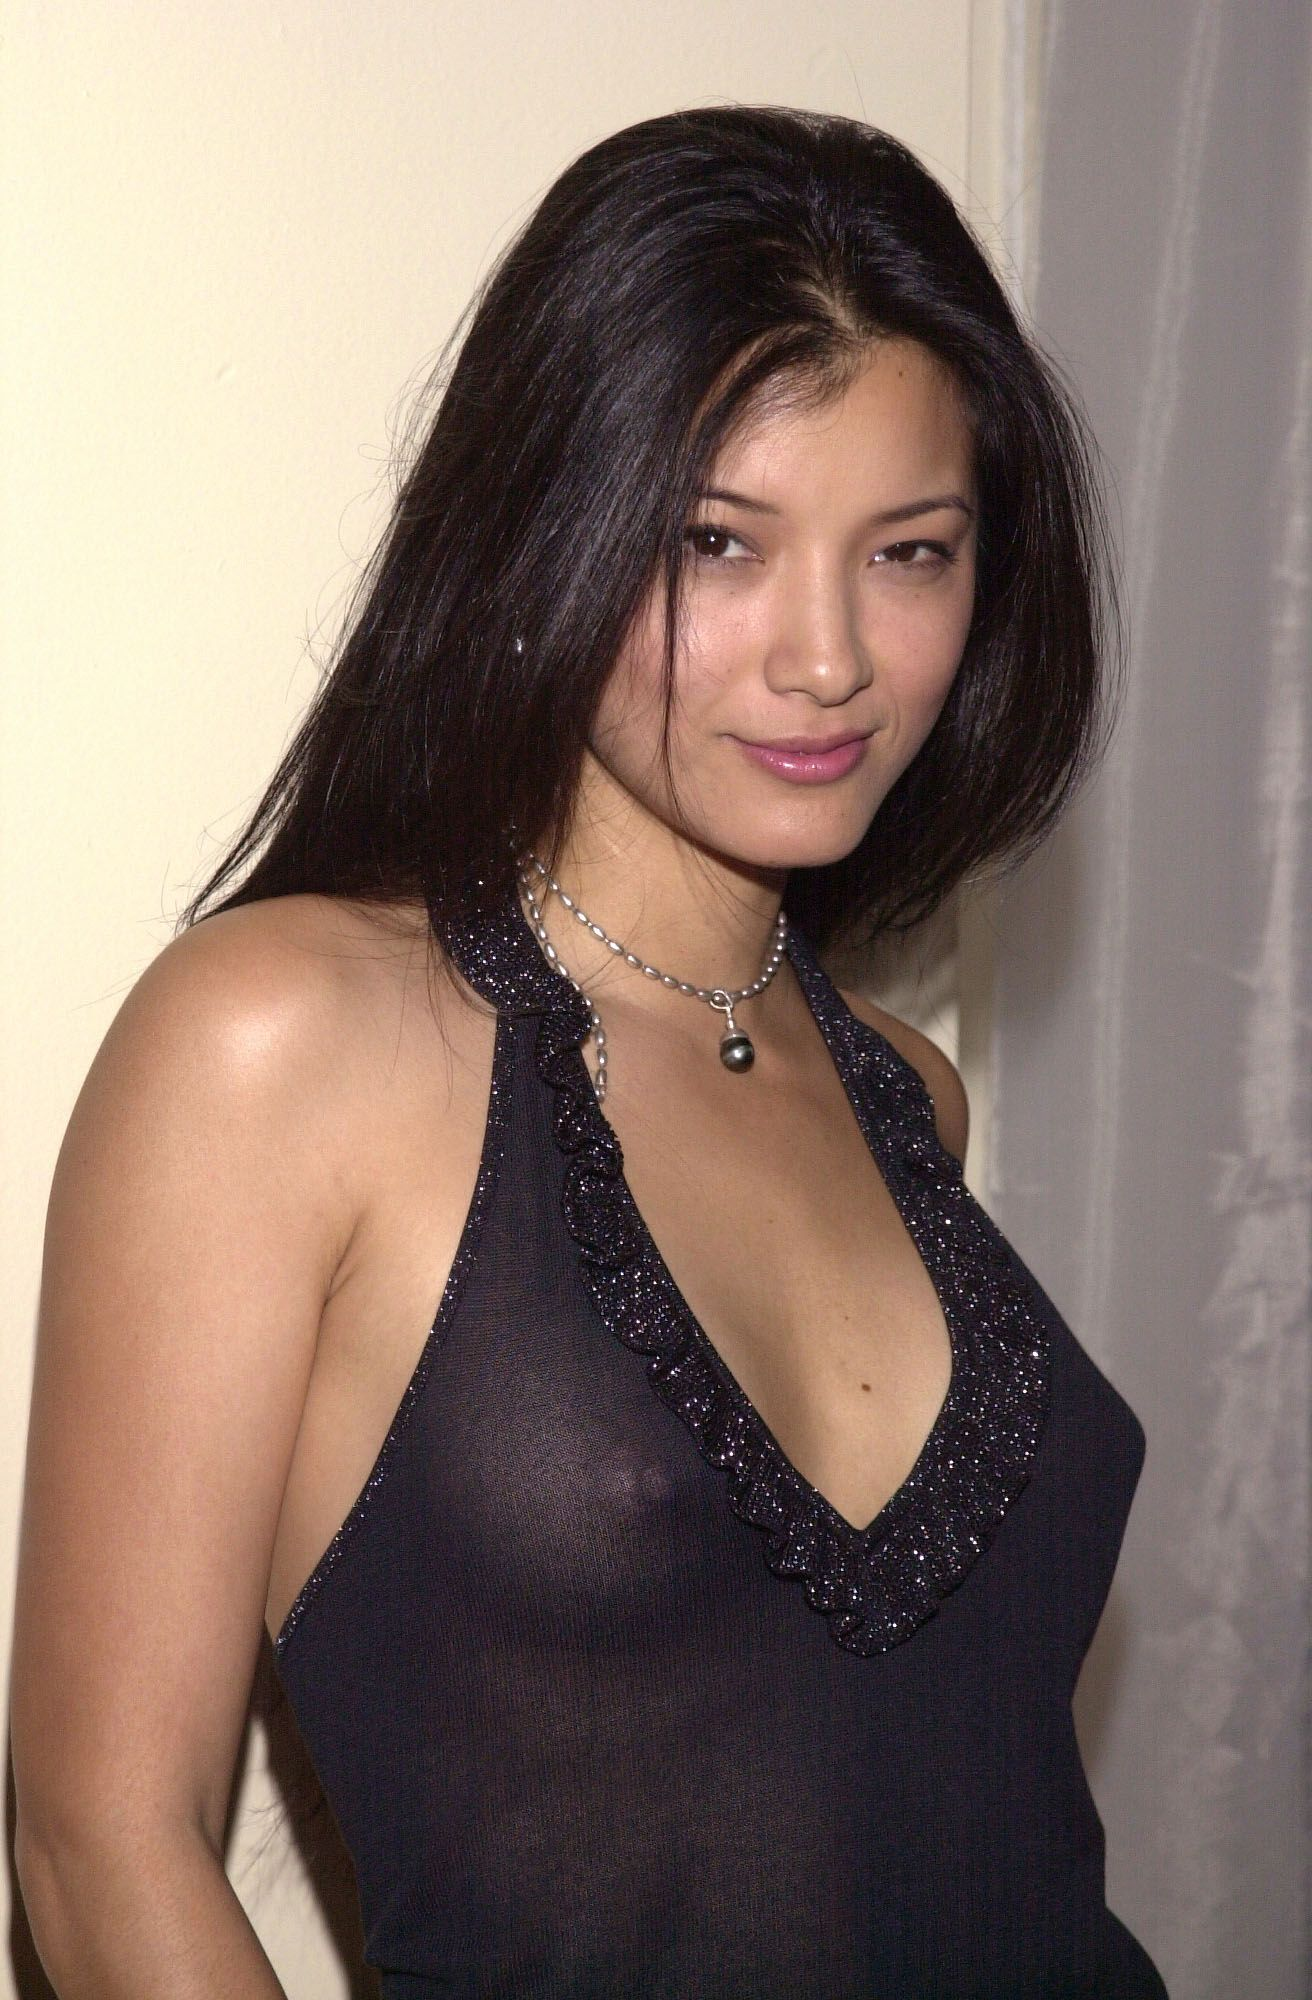 lingerie Boobs Kelly Hu naked photo 2017